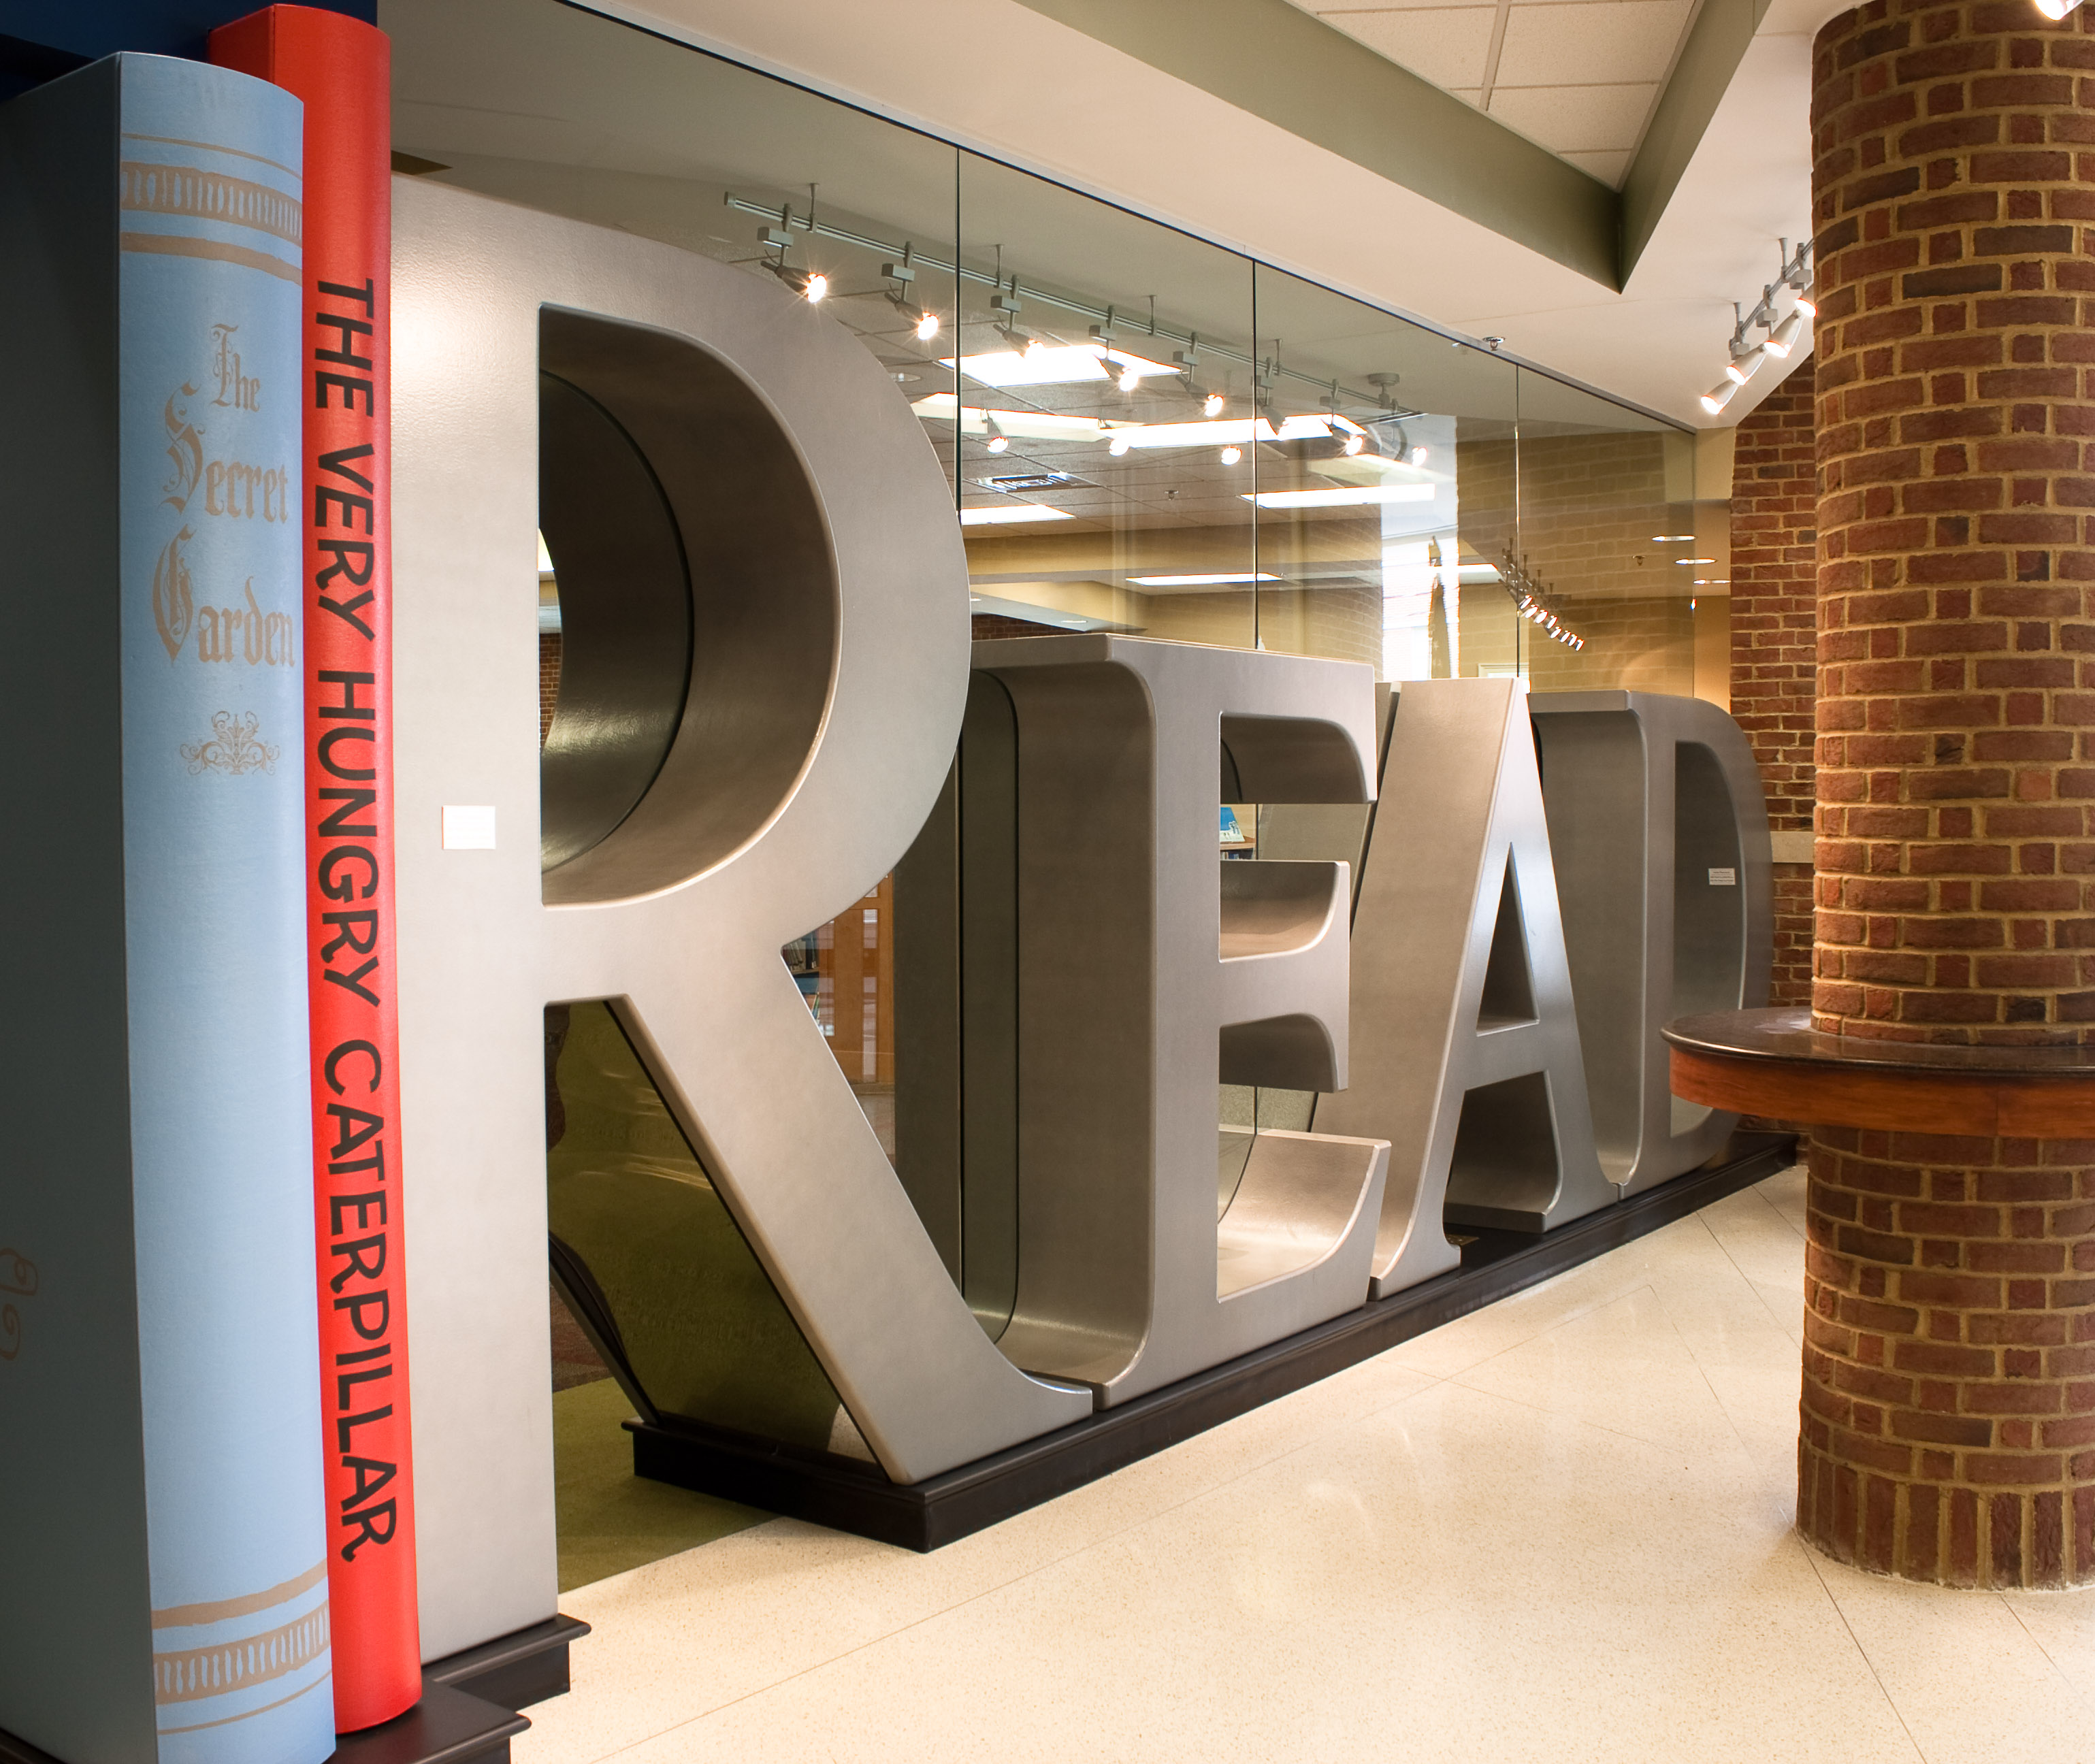 READ letters in library lobby